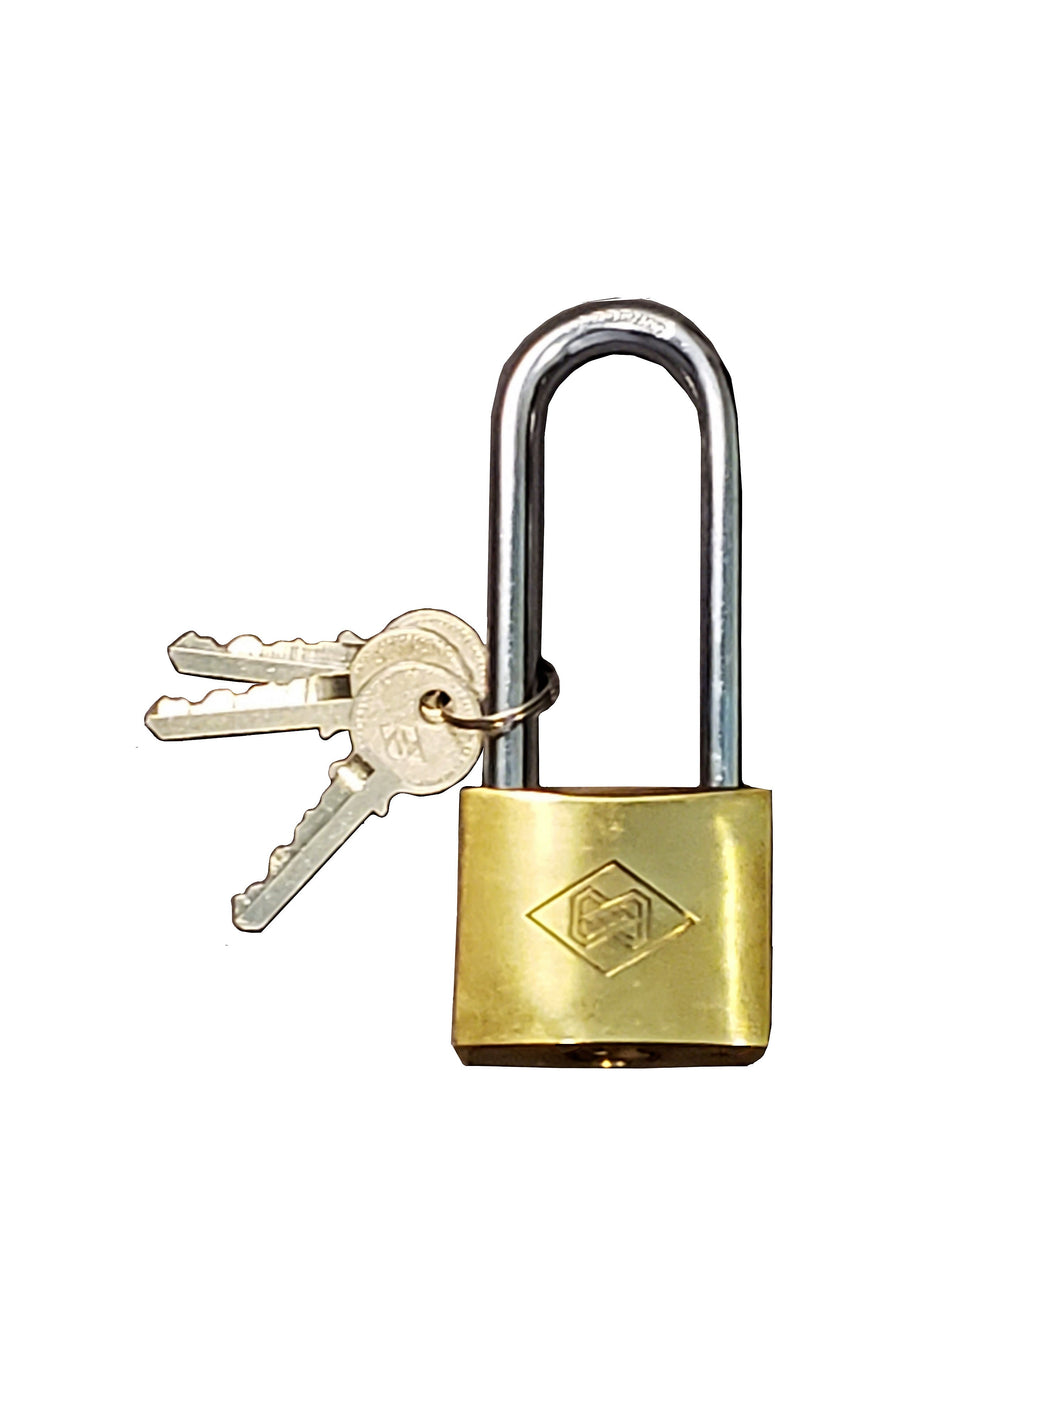 Long Shackle 50mm Padlock